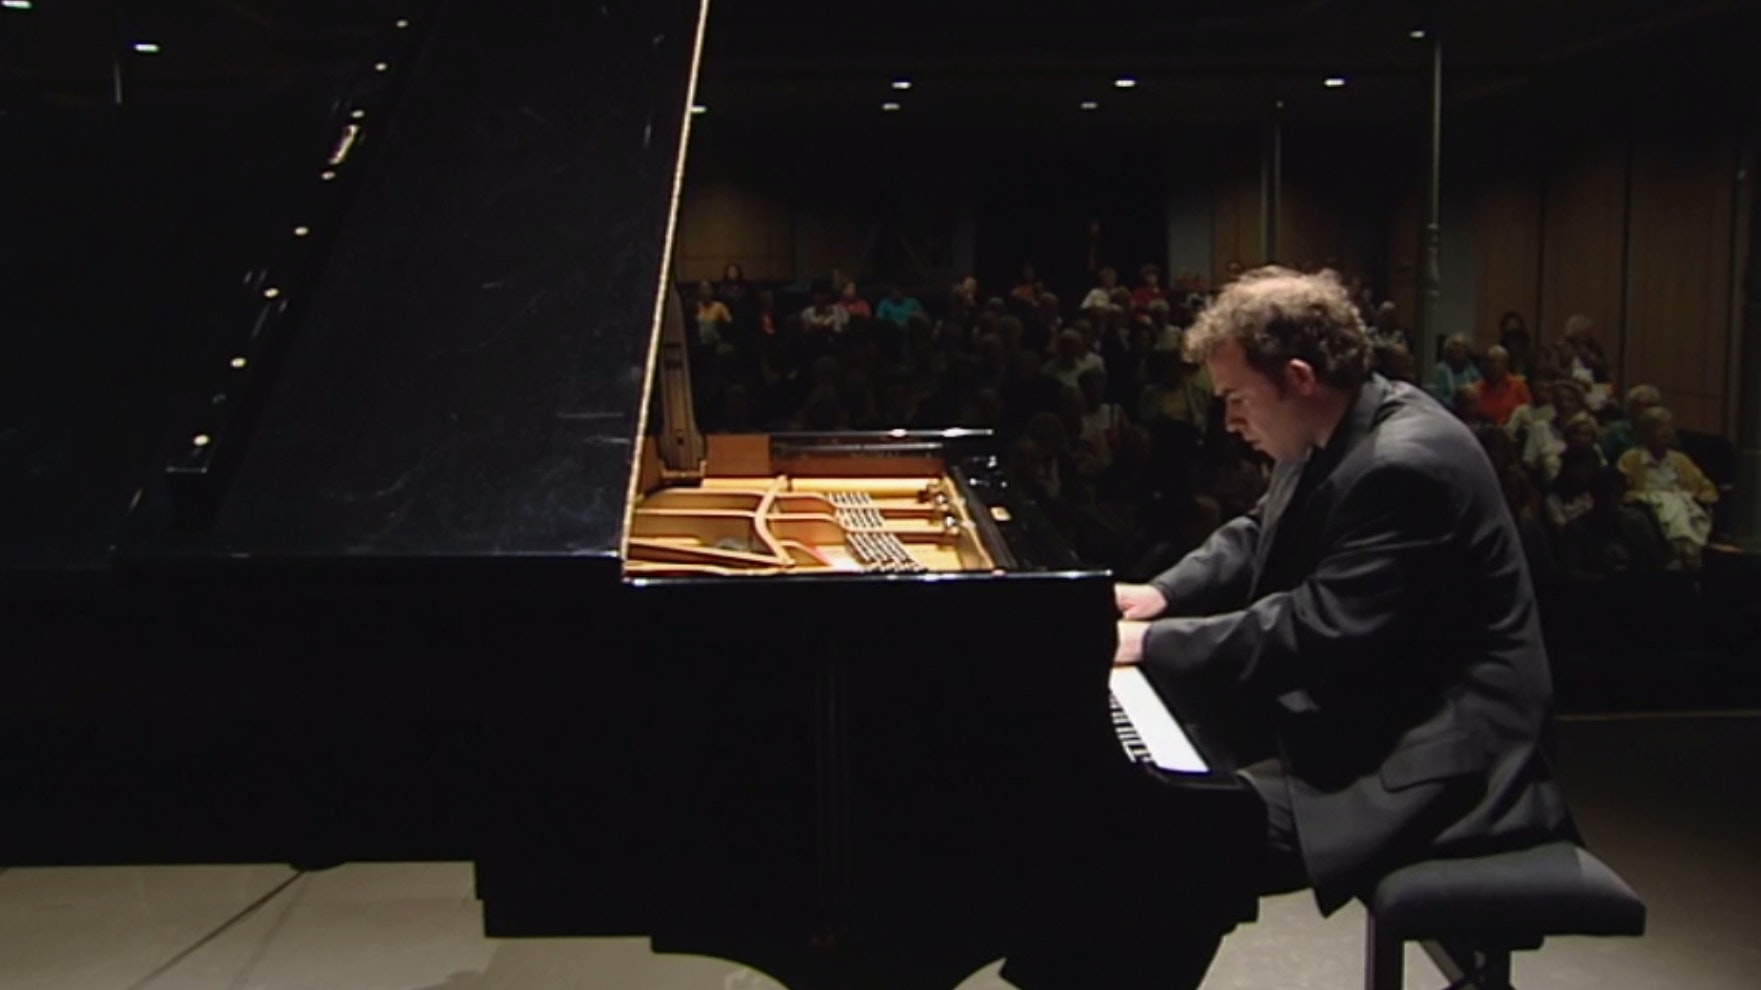 Behind-the-scenes of the Clara Haskil International Piano Competition